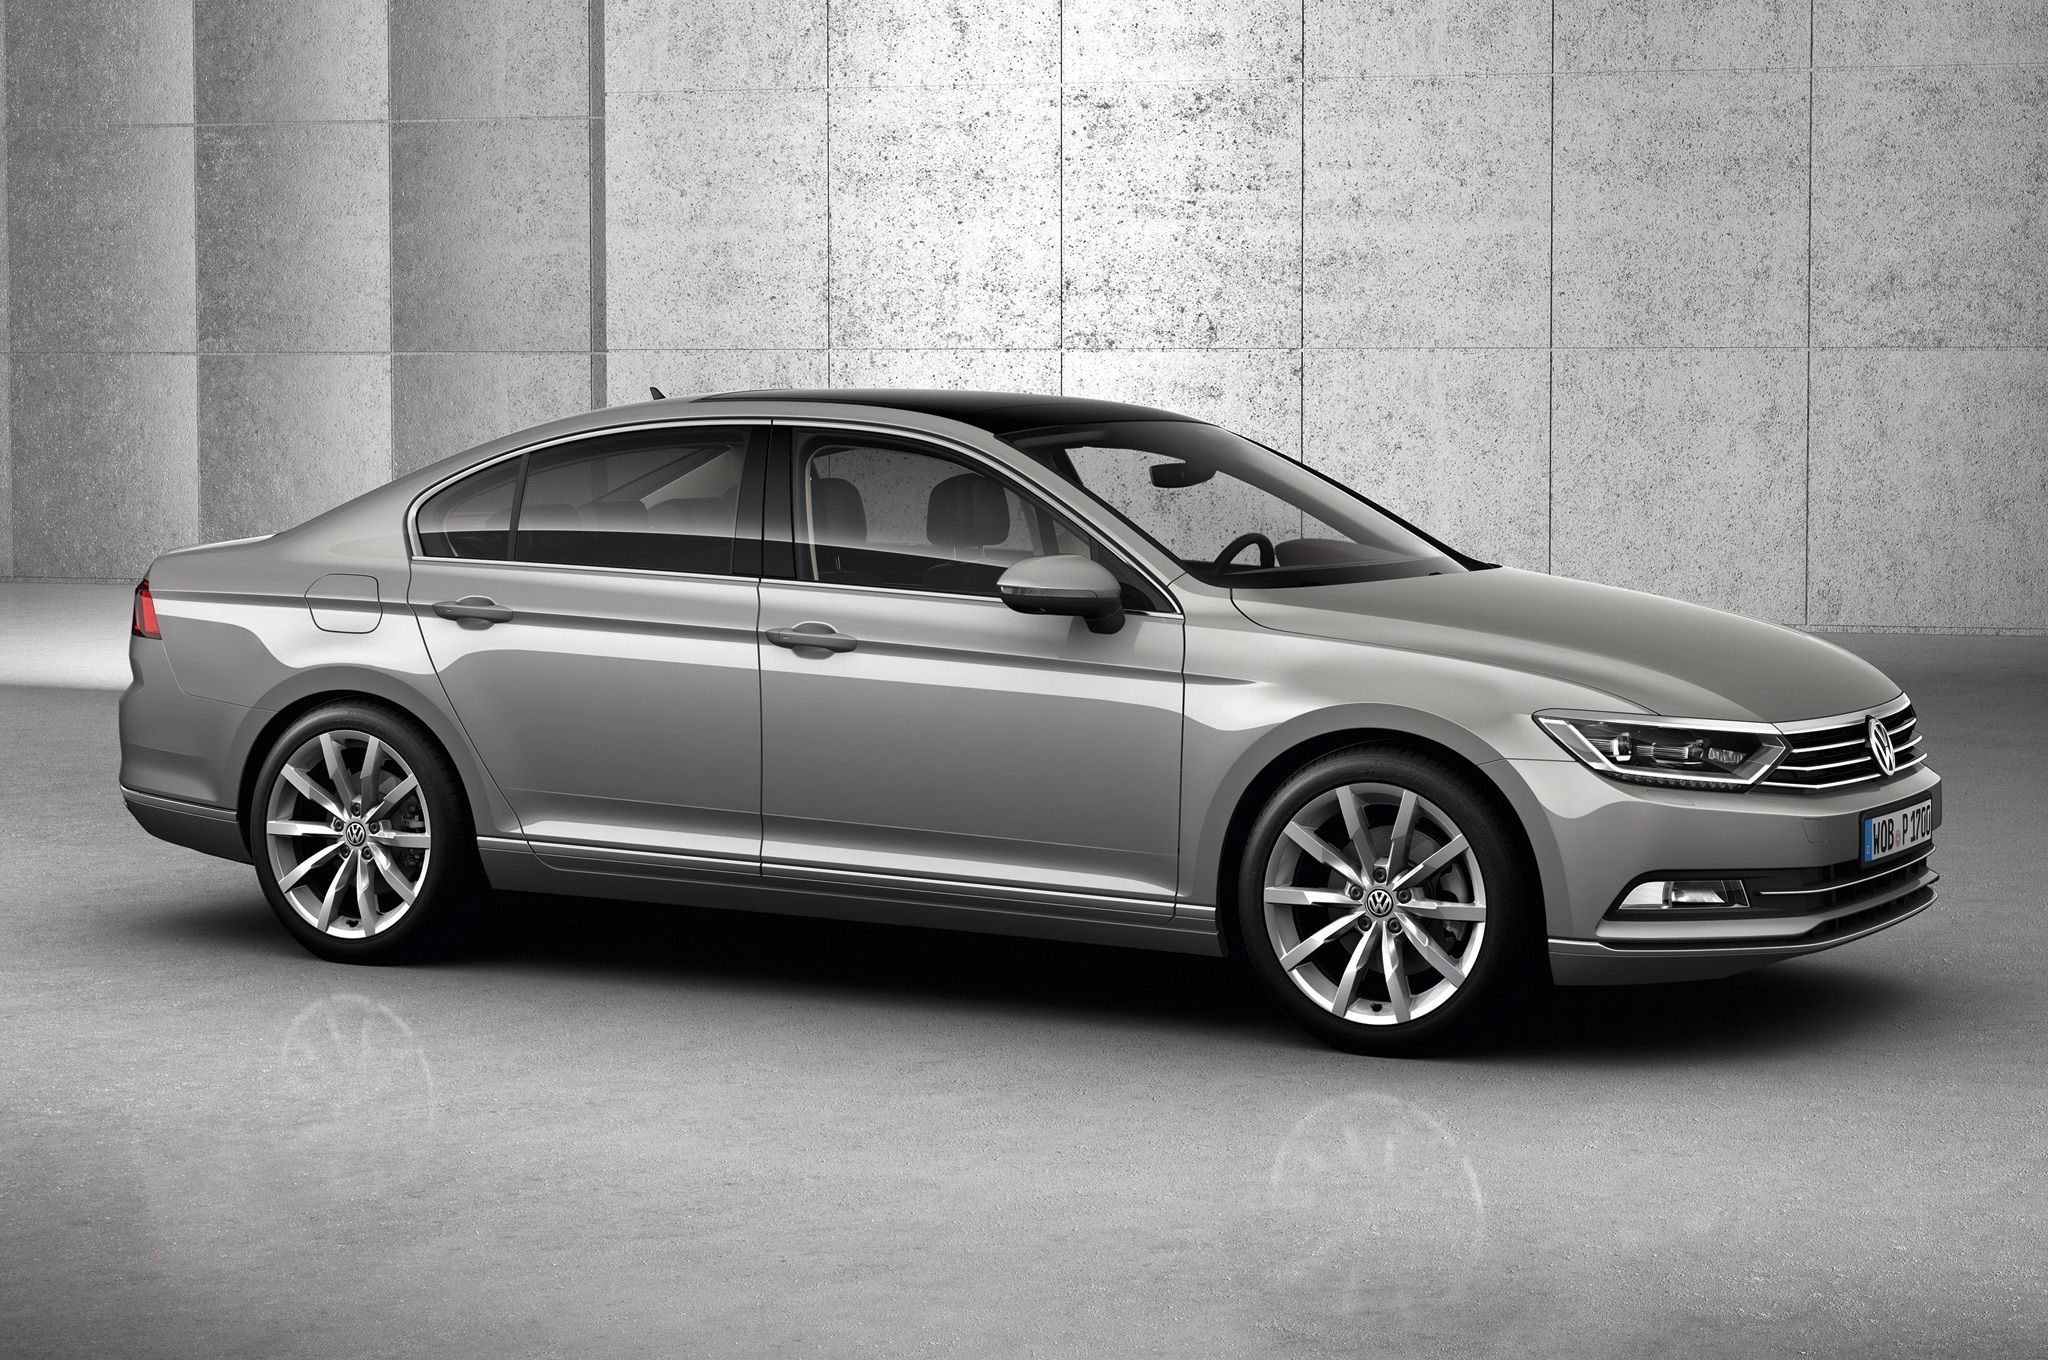 2016 vw passat changes engine price and release date the new 2016 vw